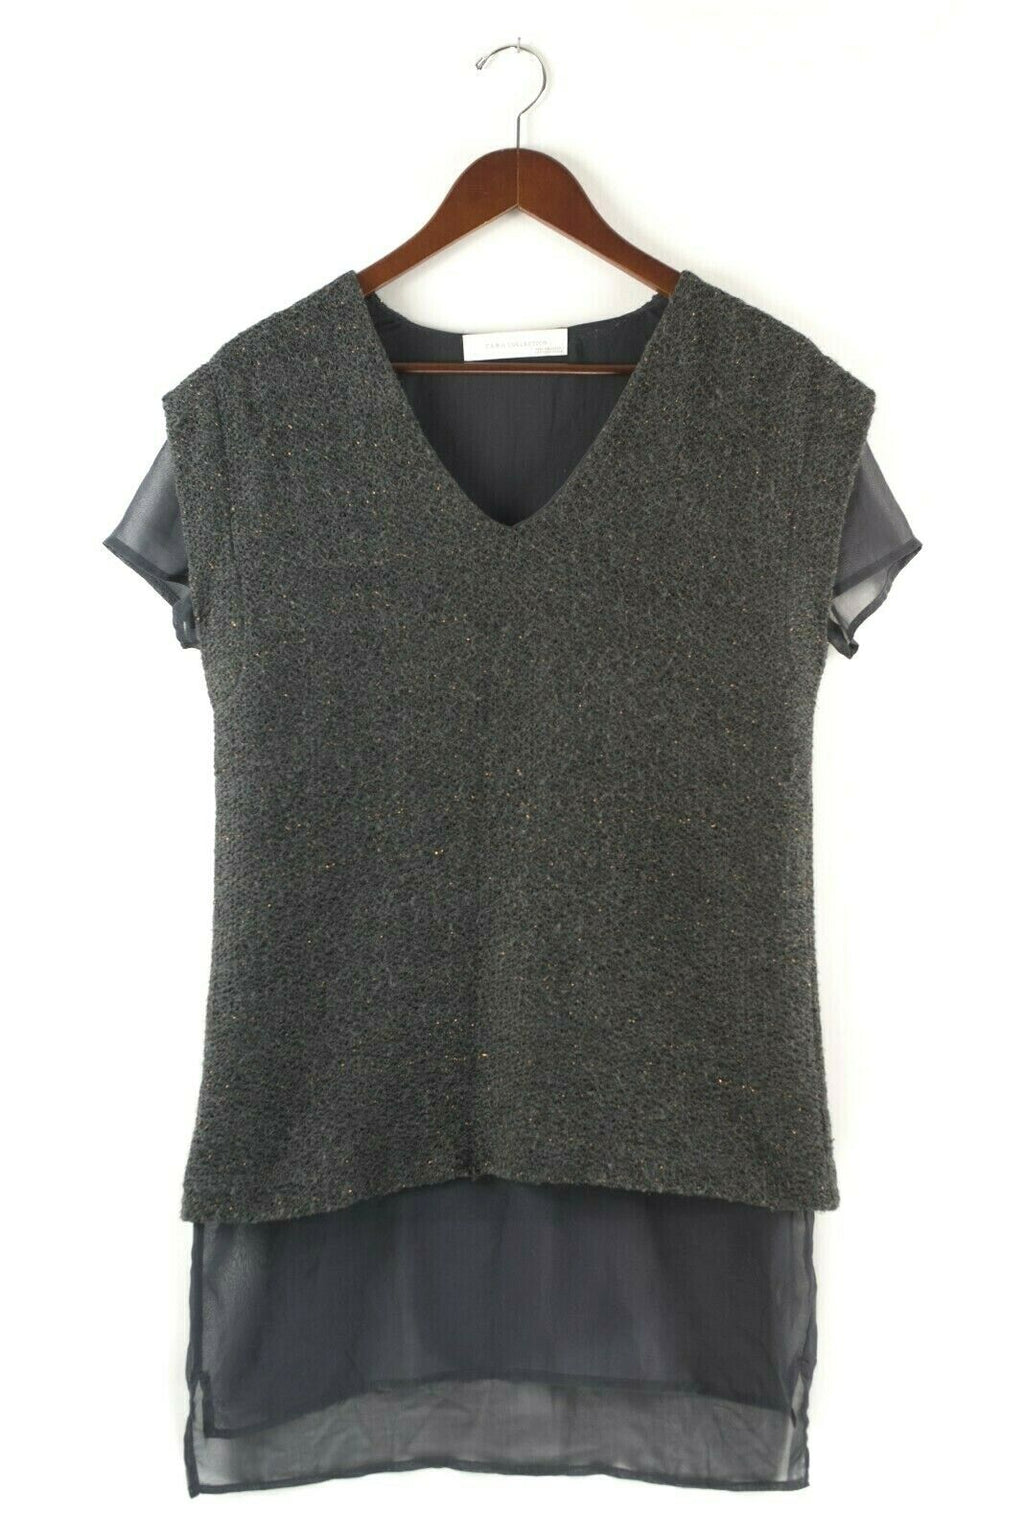 Zara Womans Medium Grey Shirt Layered Metallic Gold Knit Sweater Top Tunic Shirt